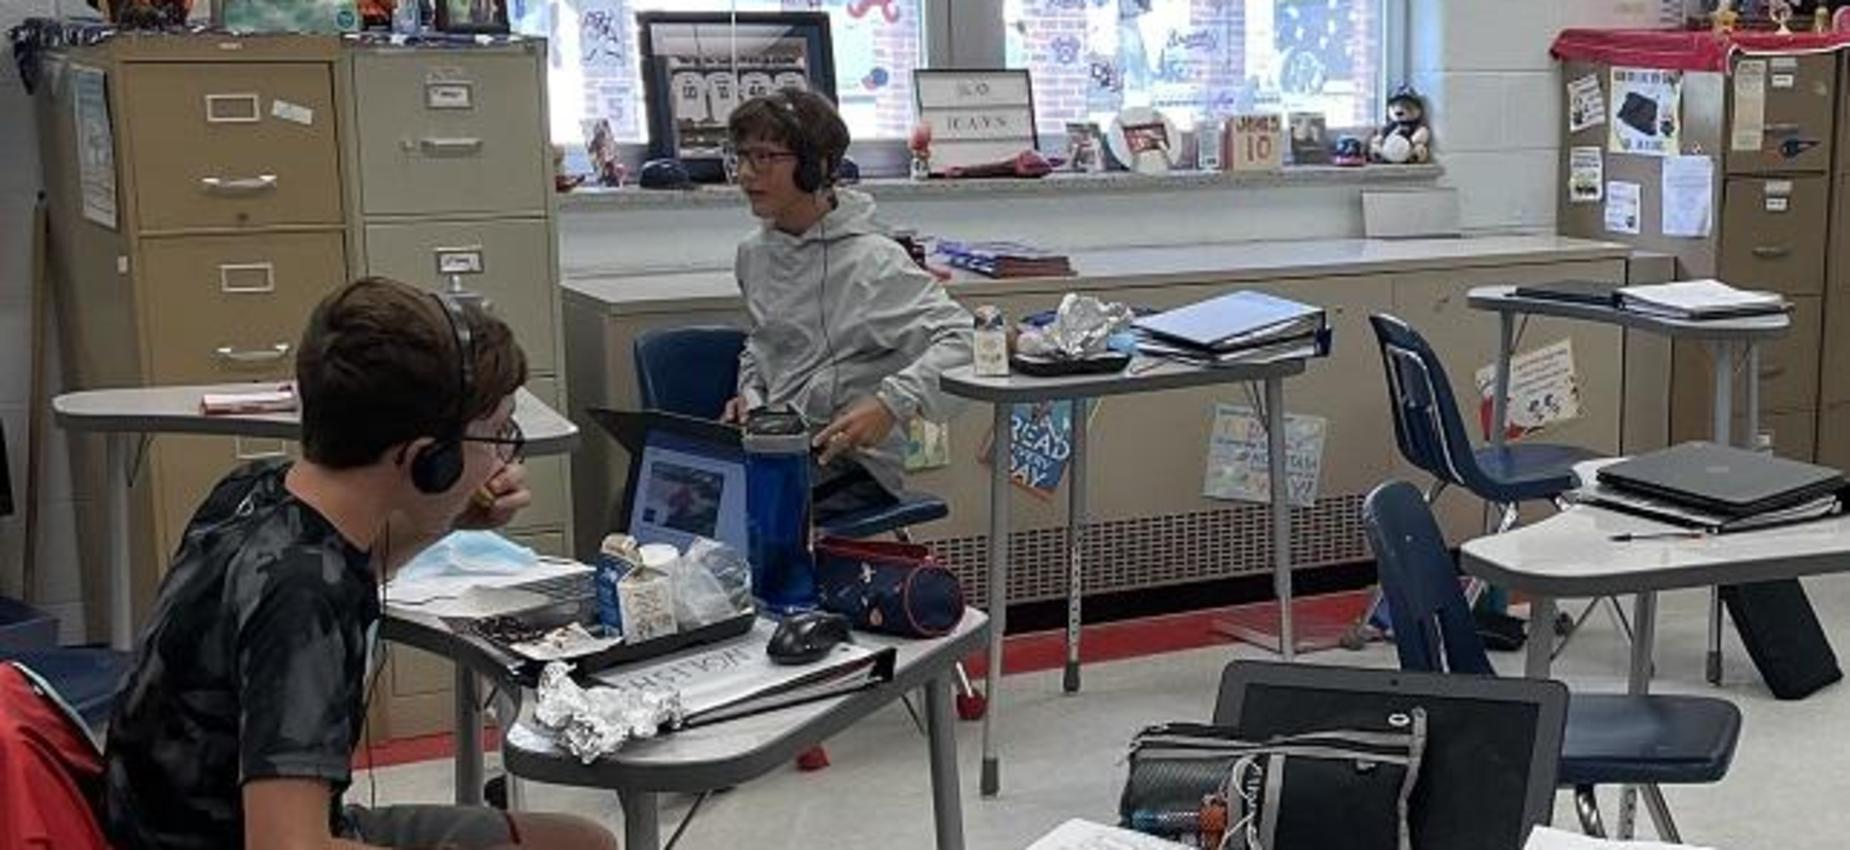 Two students work on Chromebooks in a classroom.